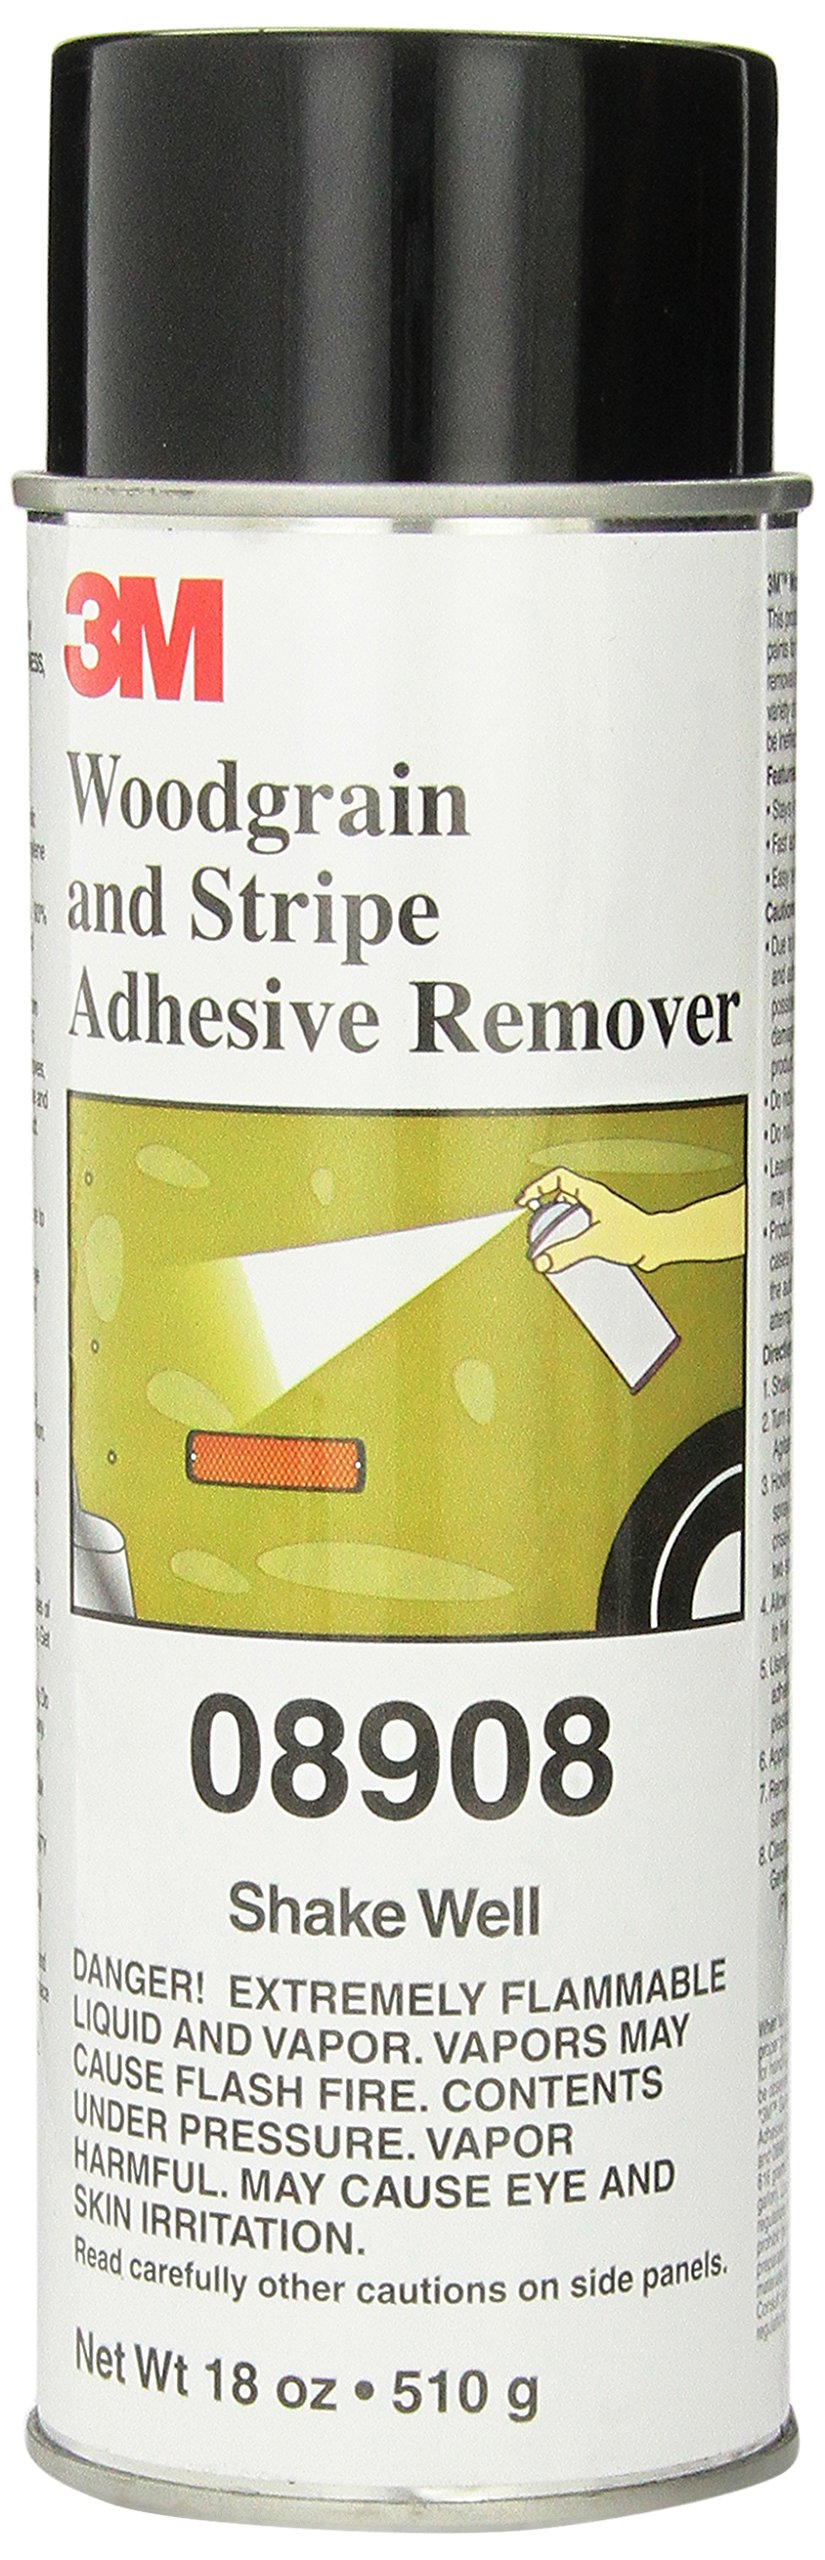 3M 08908 Woodgrain and Stripe Adhesive Remover - 18 fl. oz. product image